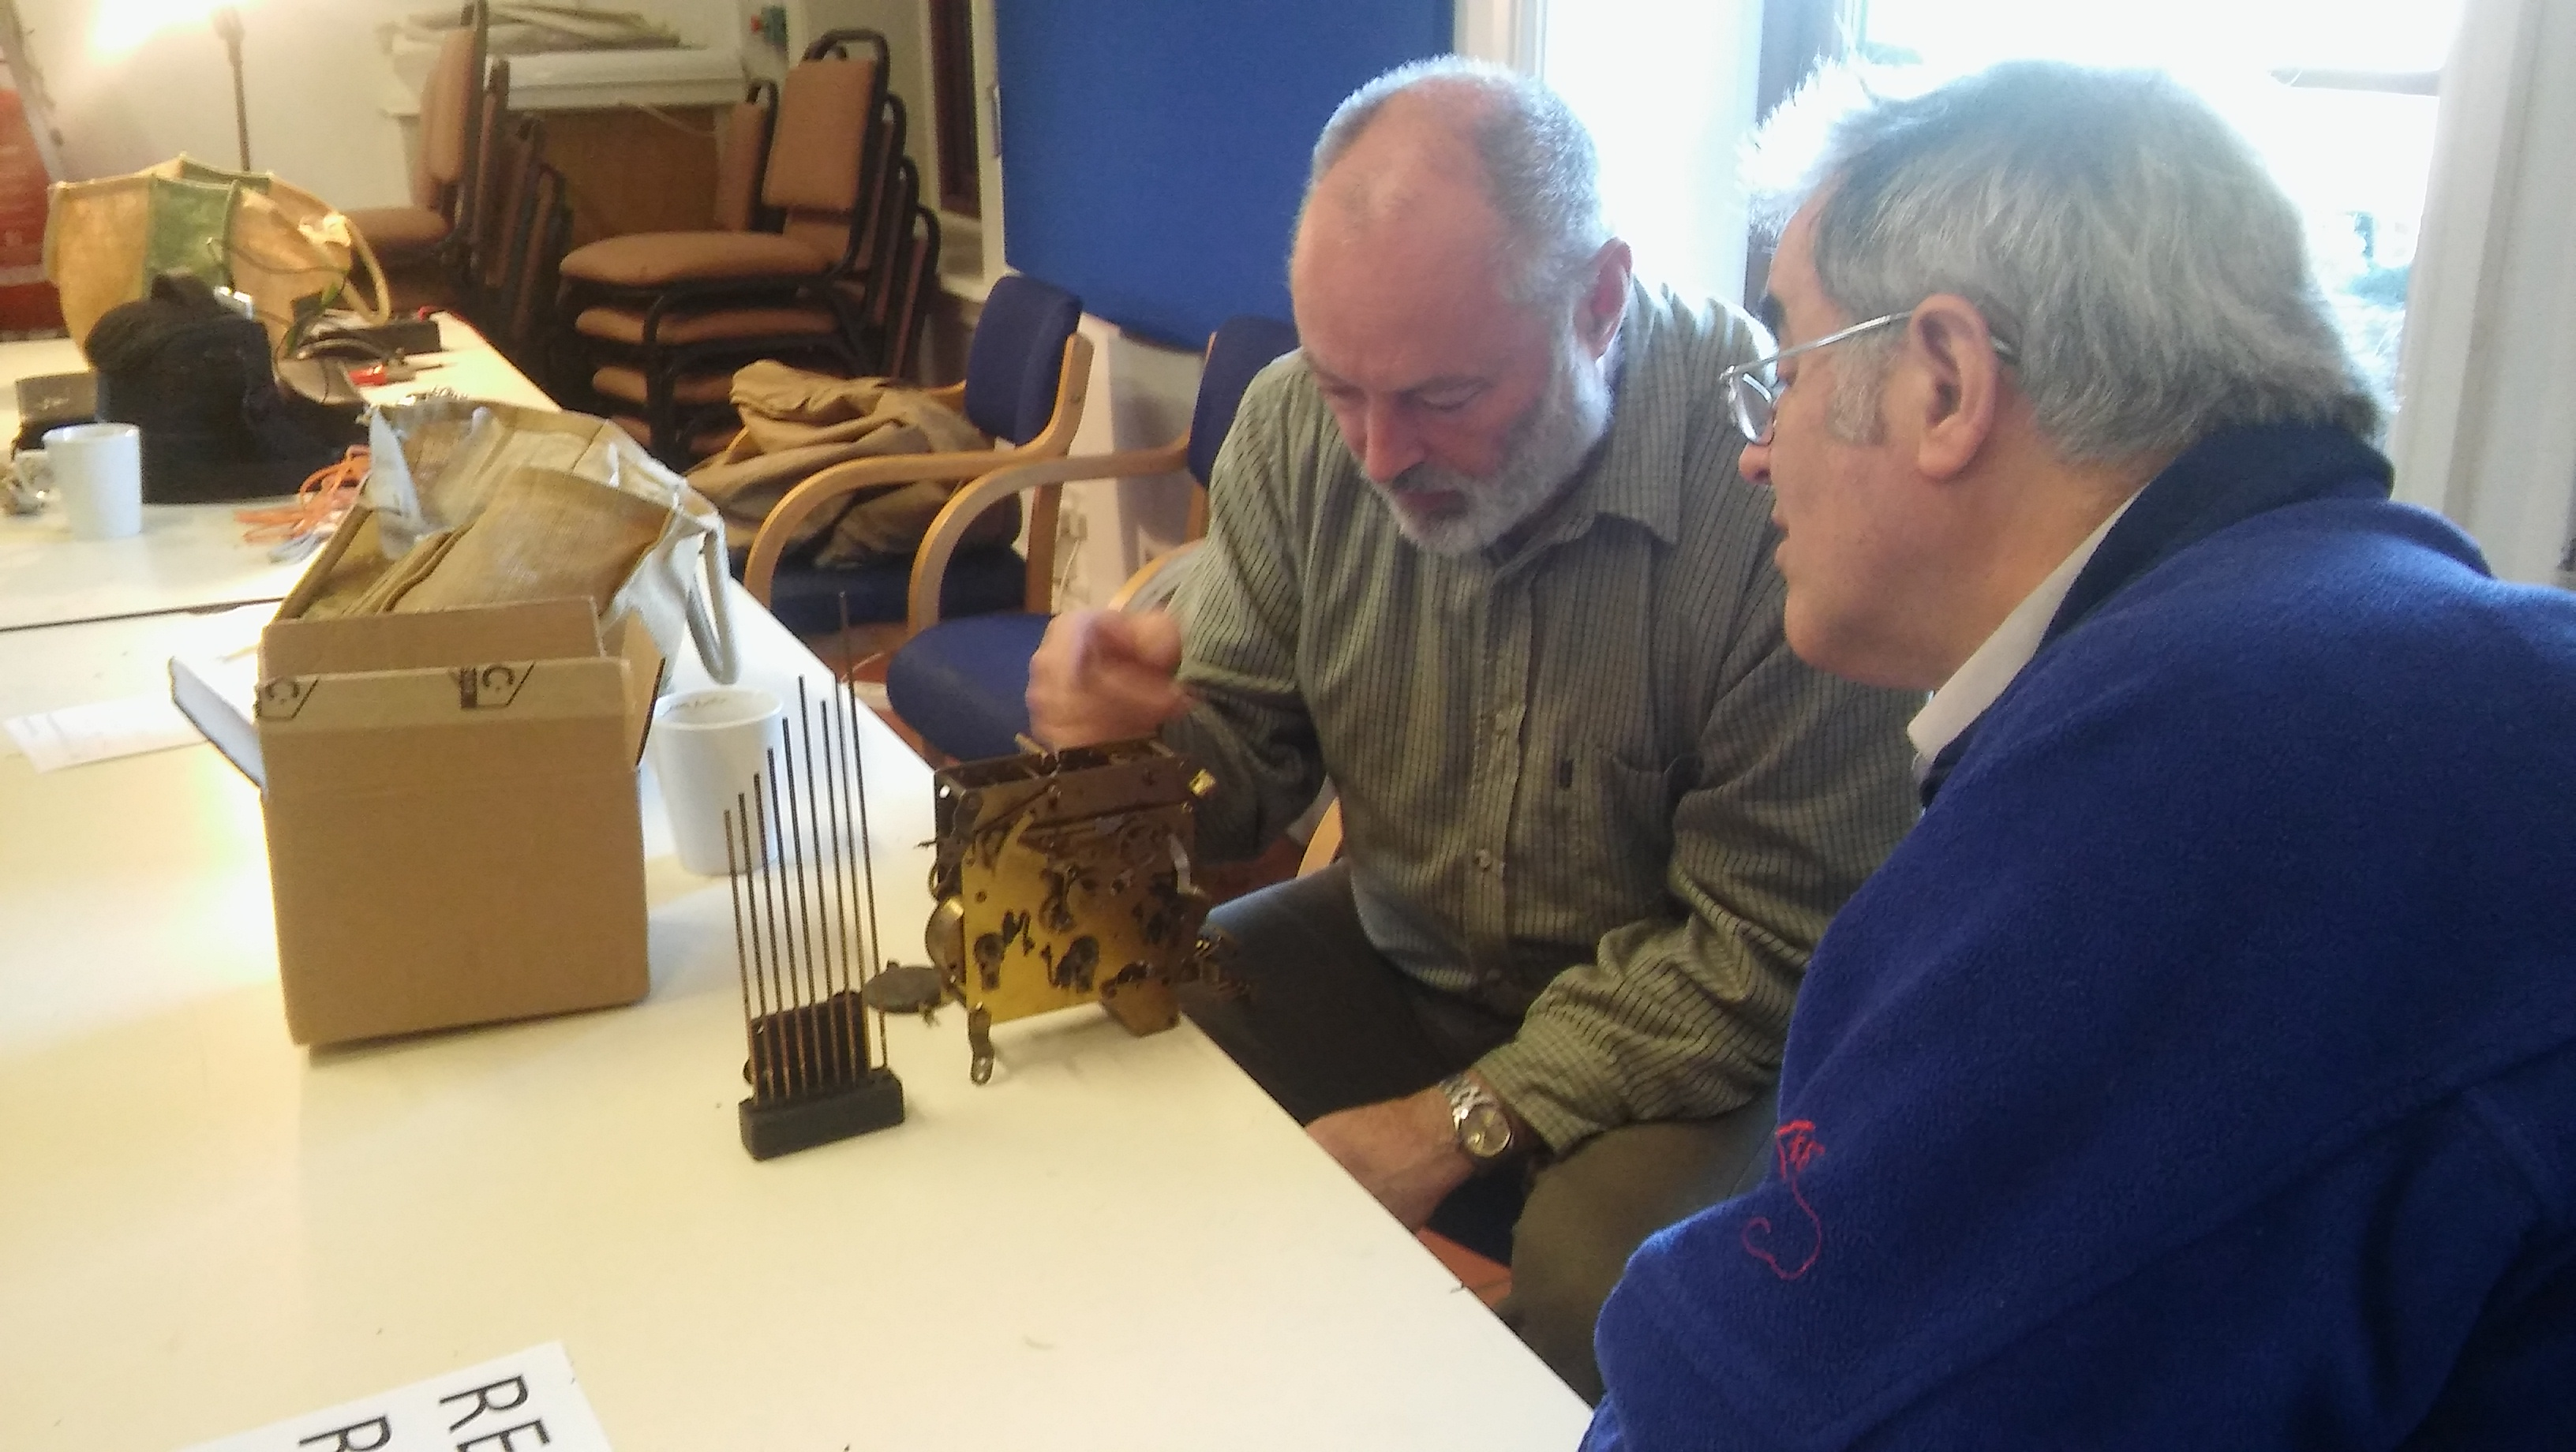 Repairing a clock mechanism at one of our events during 2015.